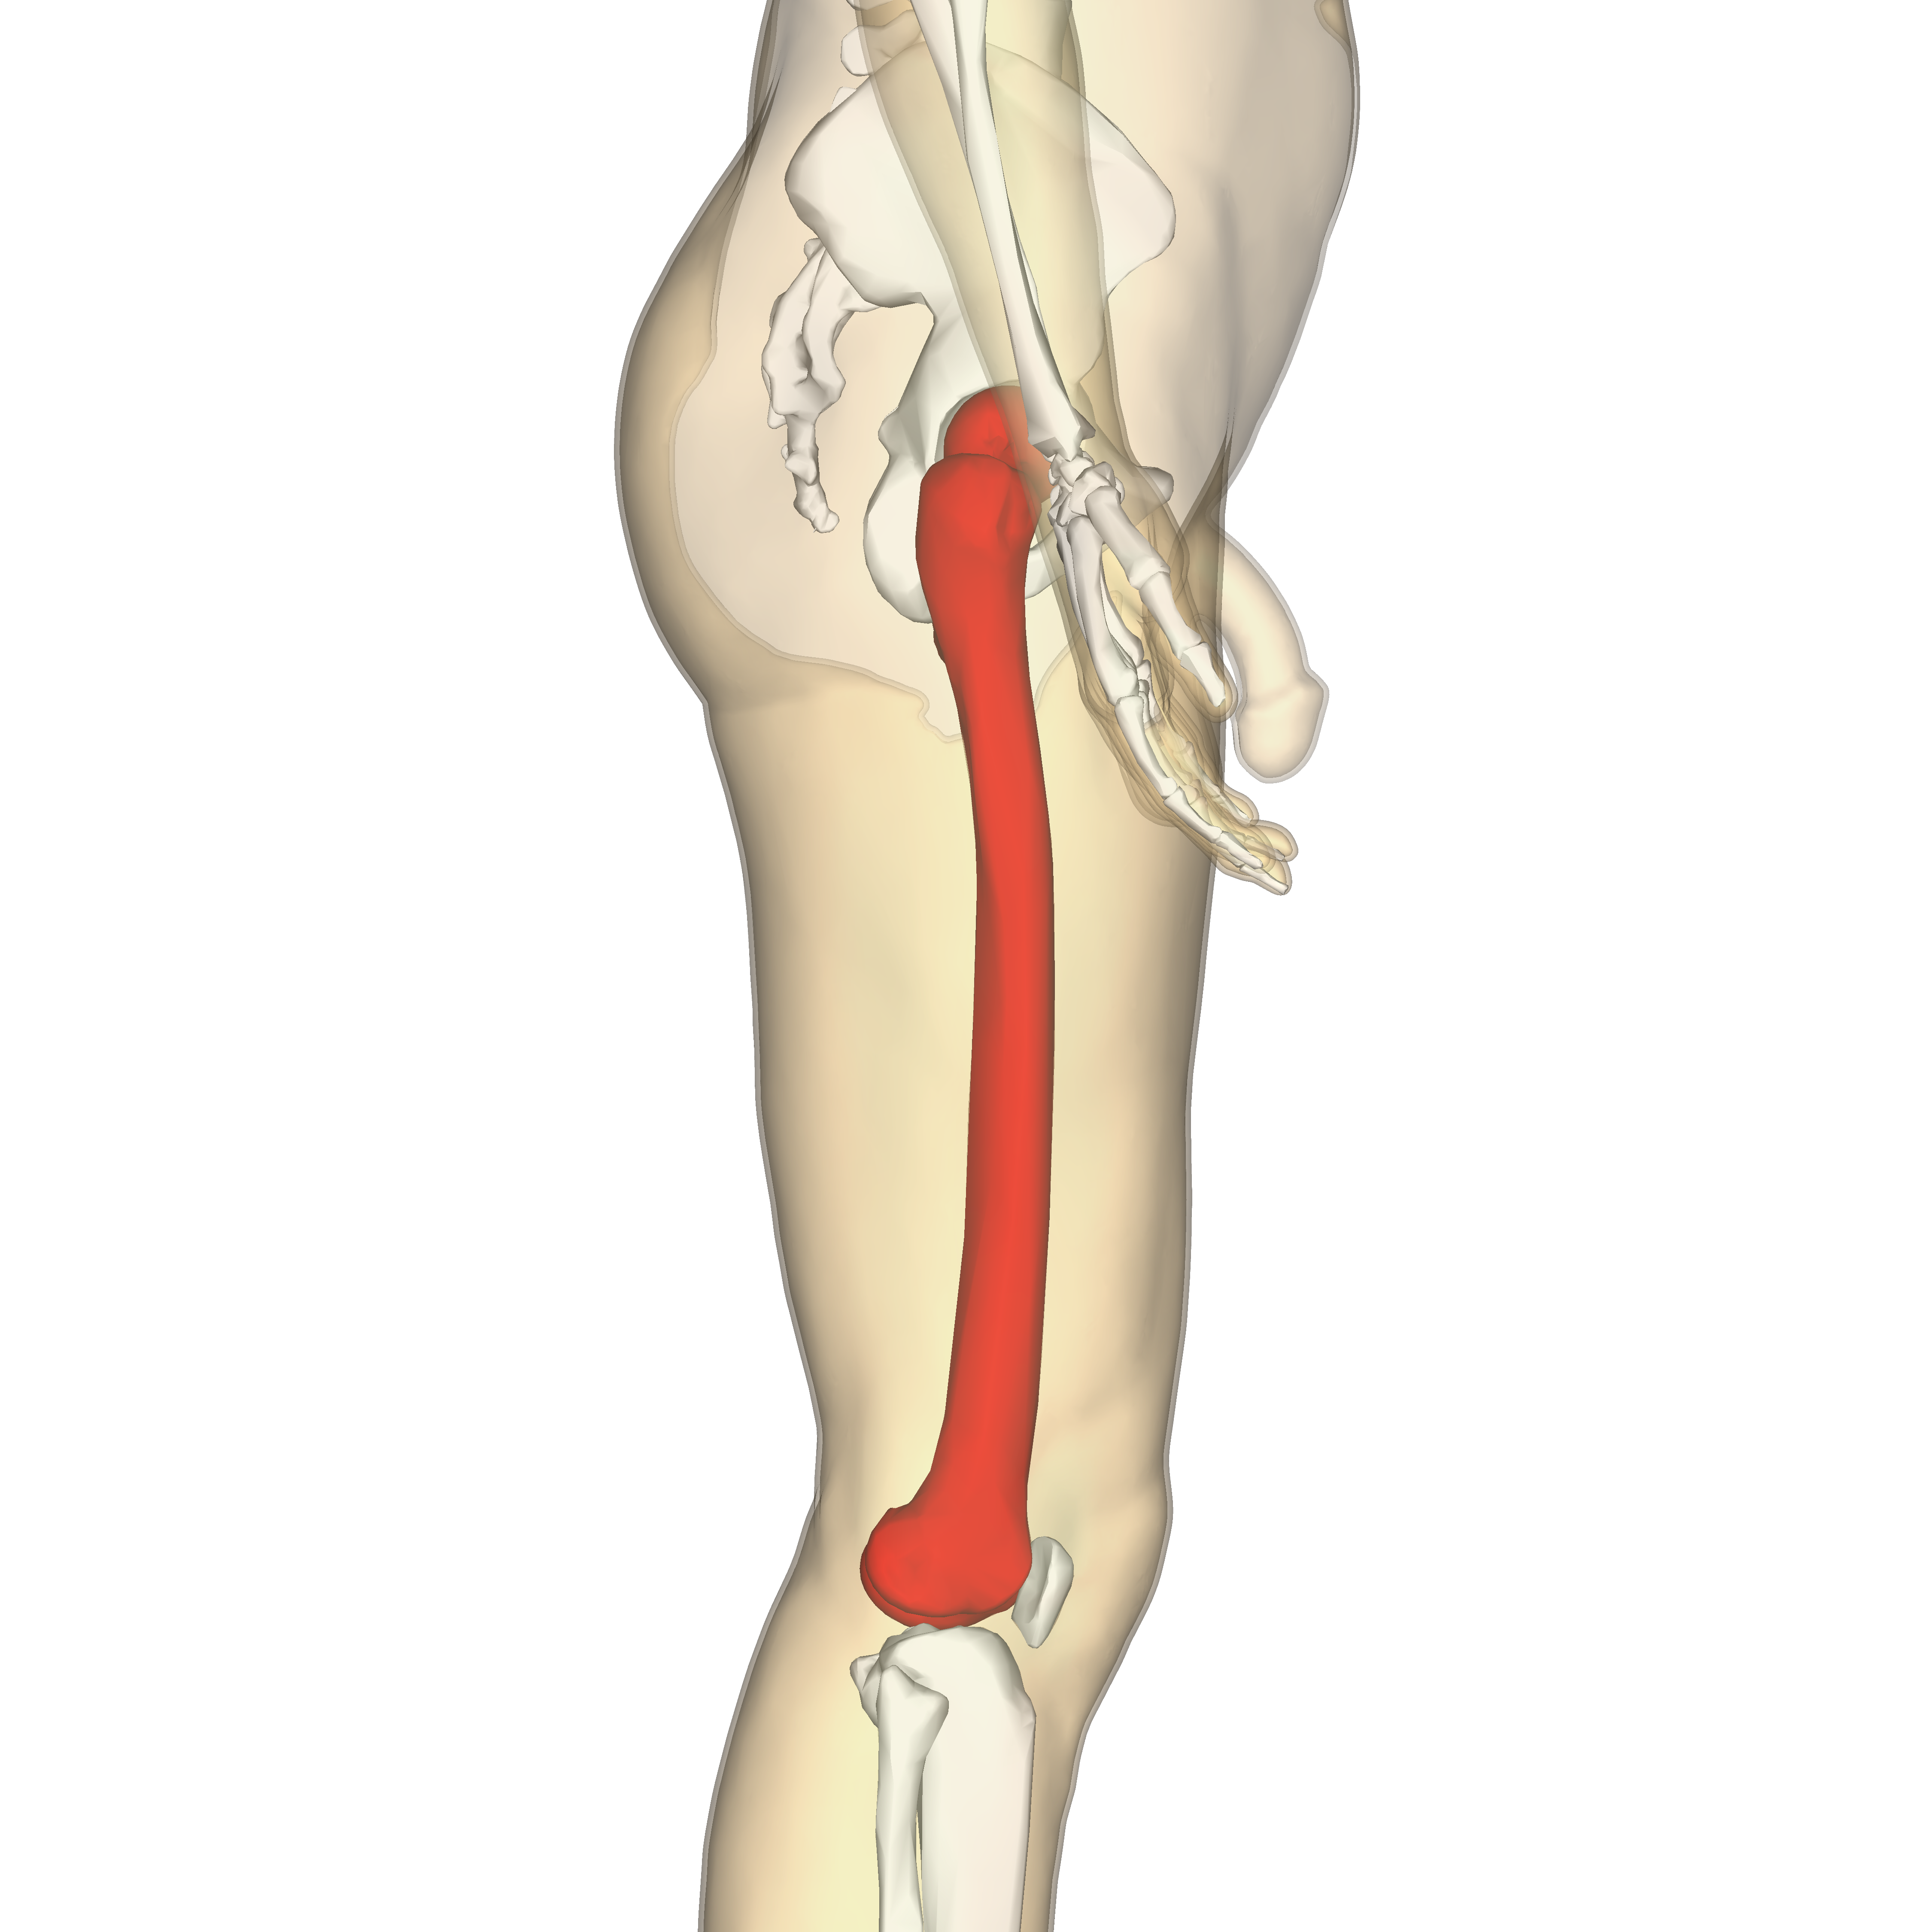 Filefemur Lateral View3g Wikimedia Commons